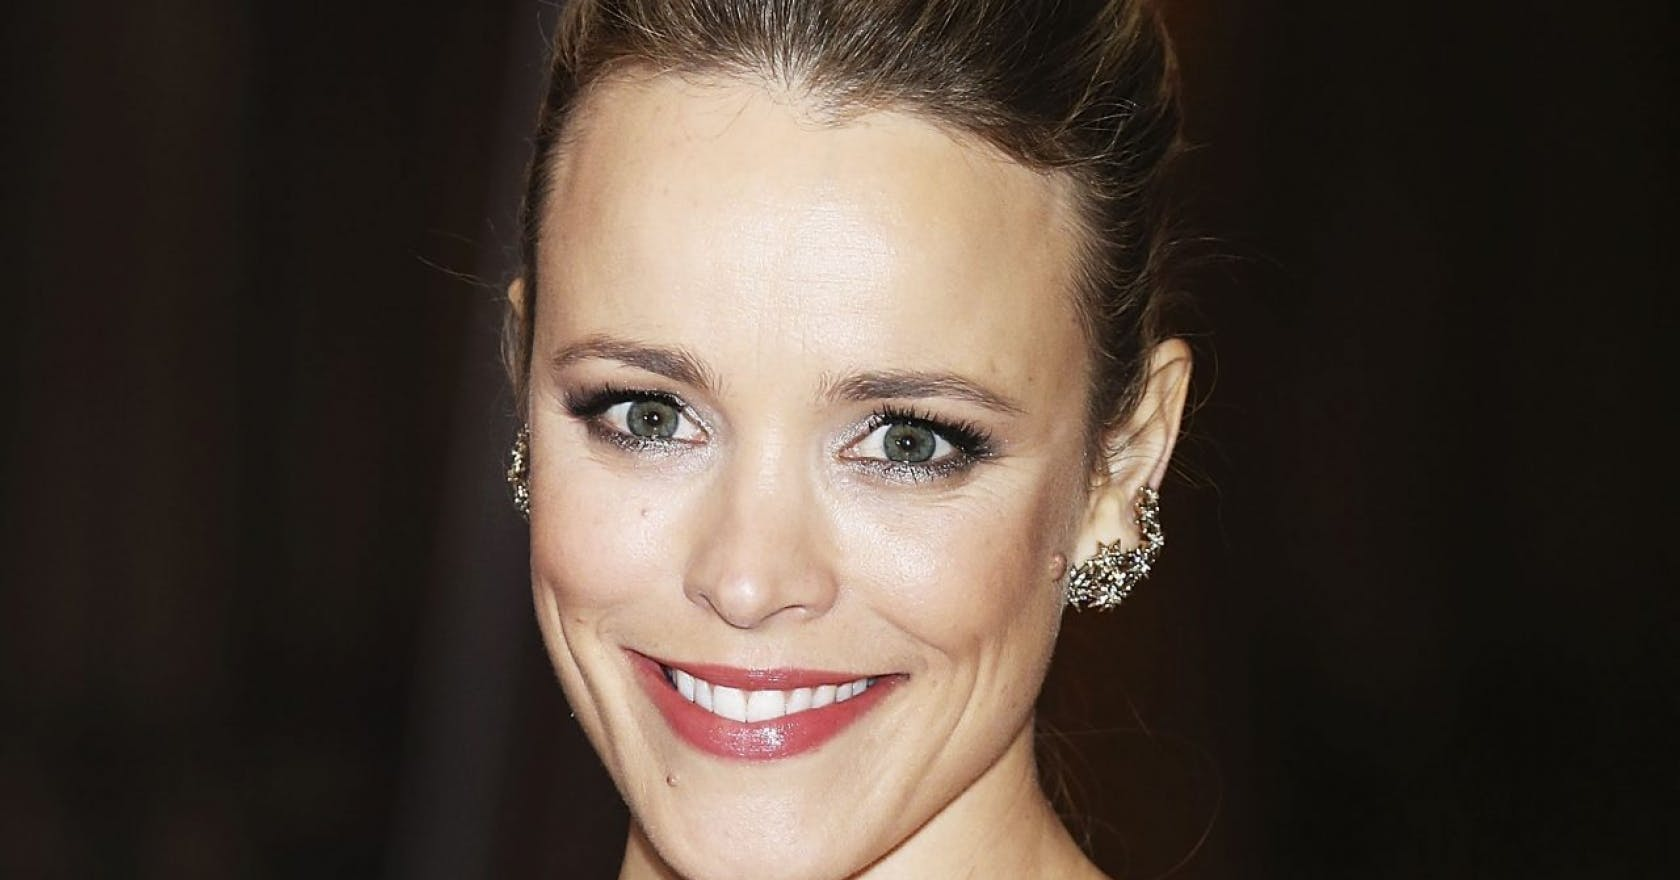 Rachel McAdams is bringing this classic coming-of-age story to the big screen